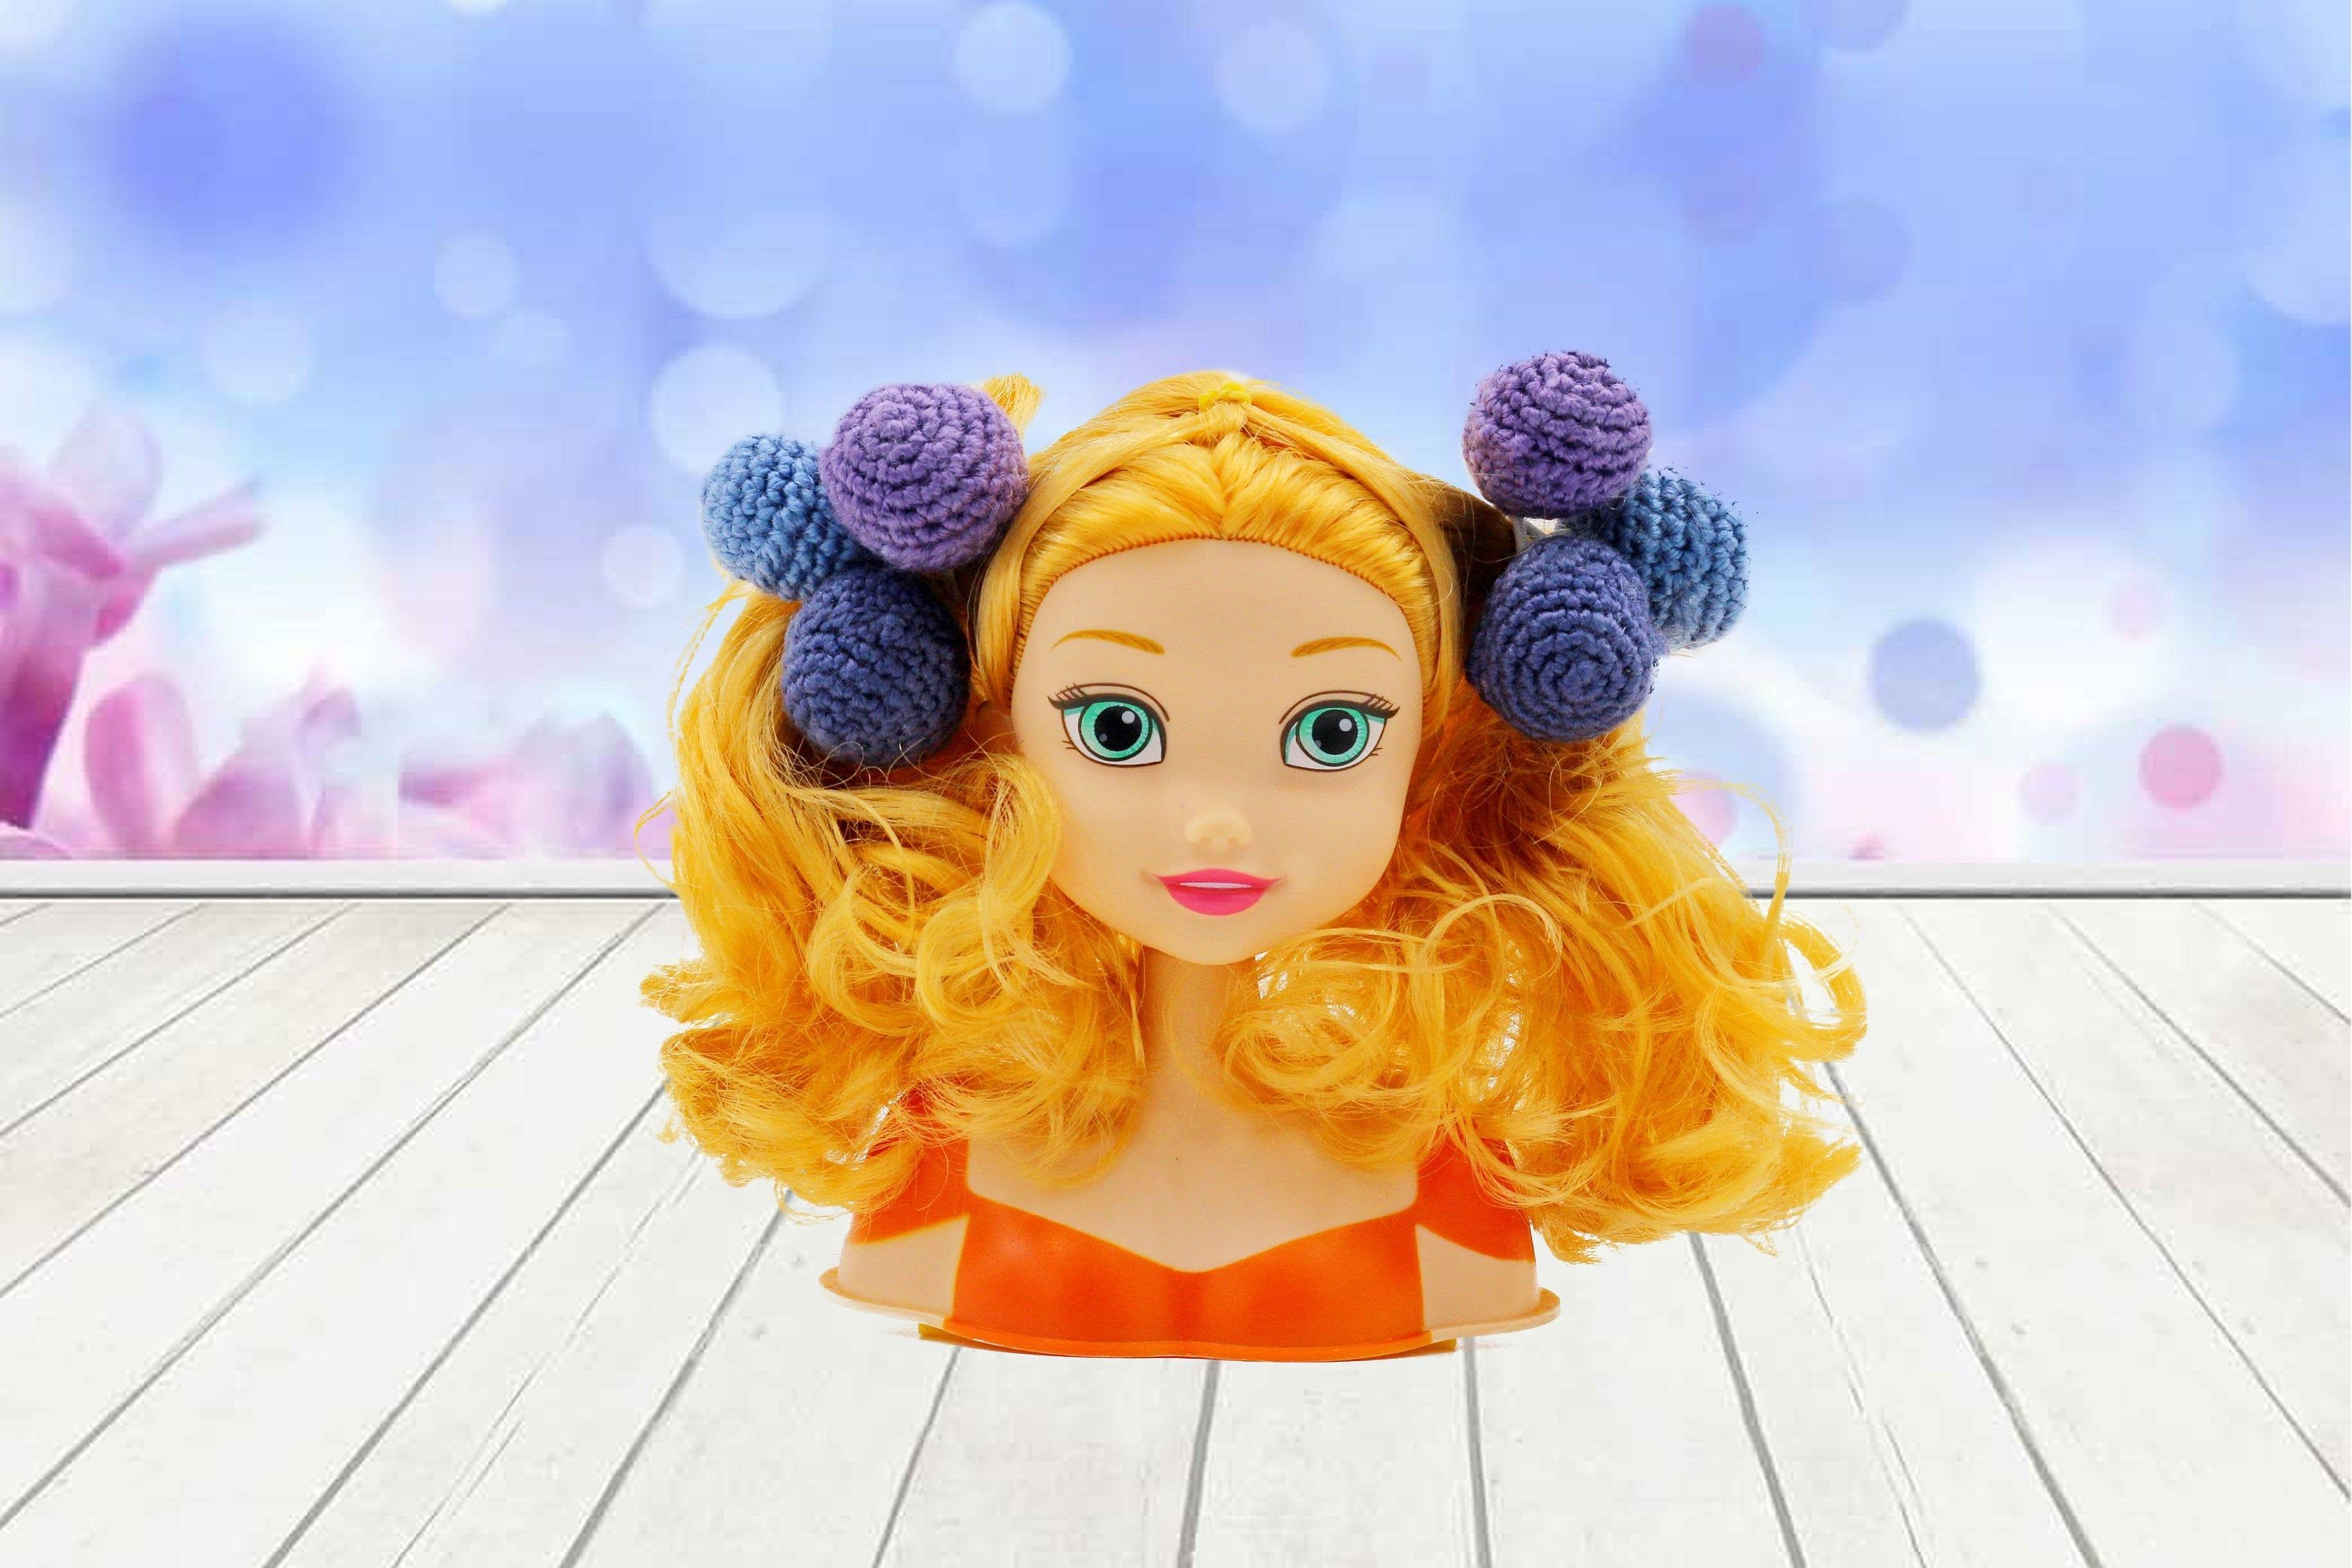 Hair ties pom pom balls Hair scrunchies Hair bobble set of 2 crochet Ponytail balls Toddler hair ties kids hair Hair Accessory for Girls #kidshairaccessories